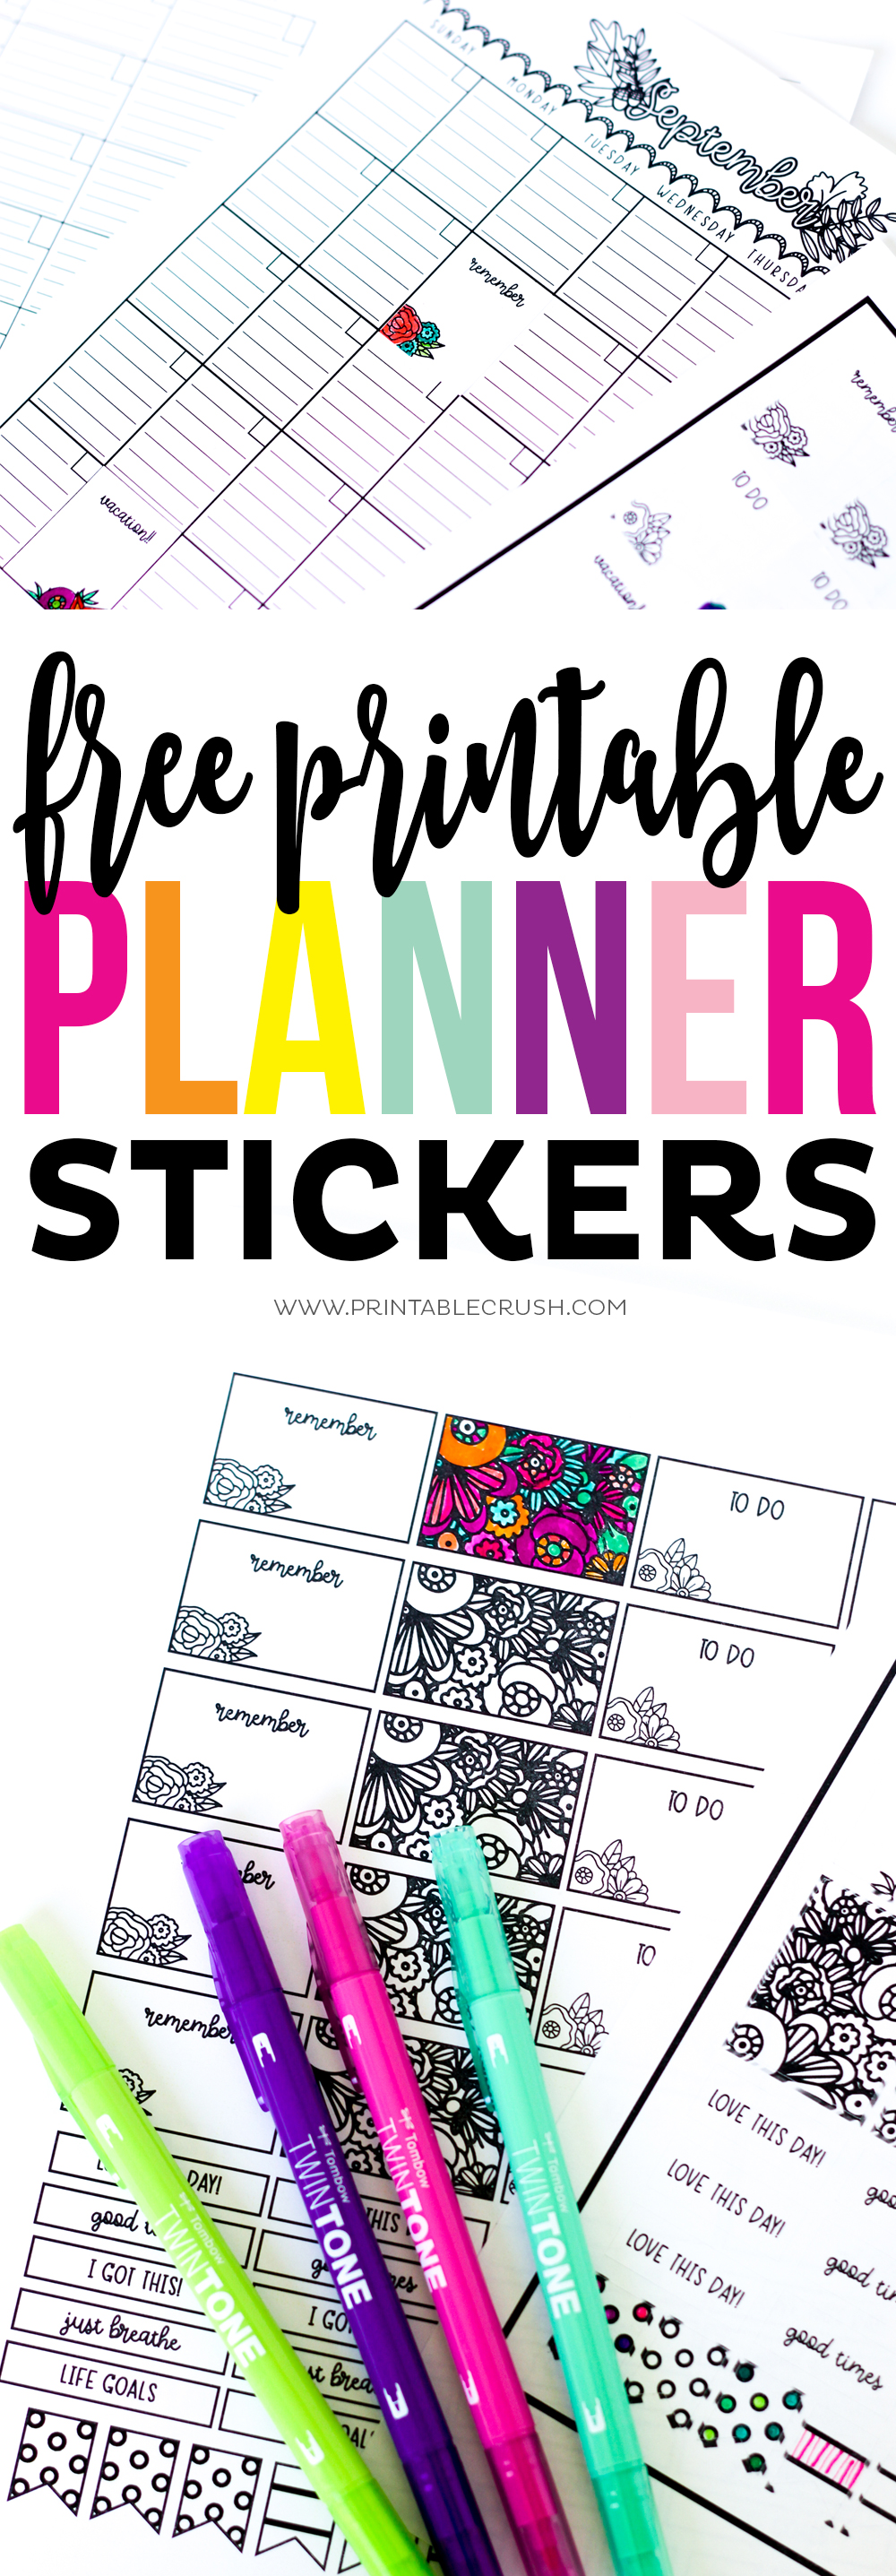 Long pin collage for printable planner stickers